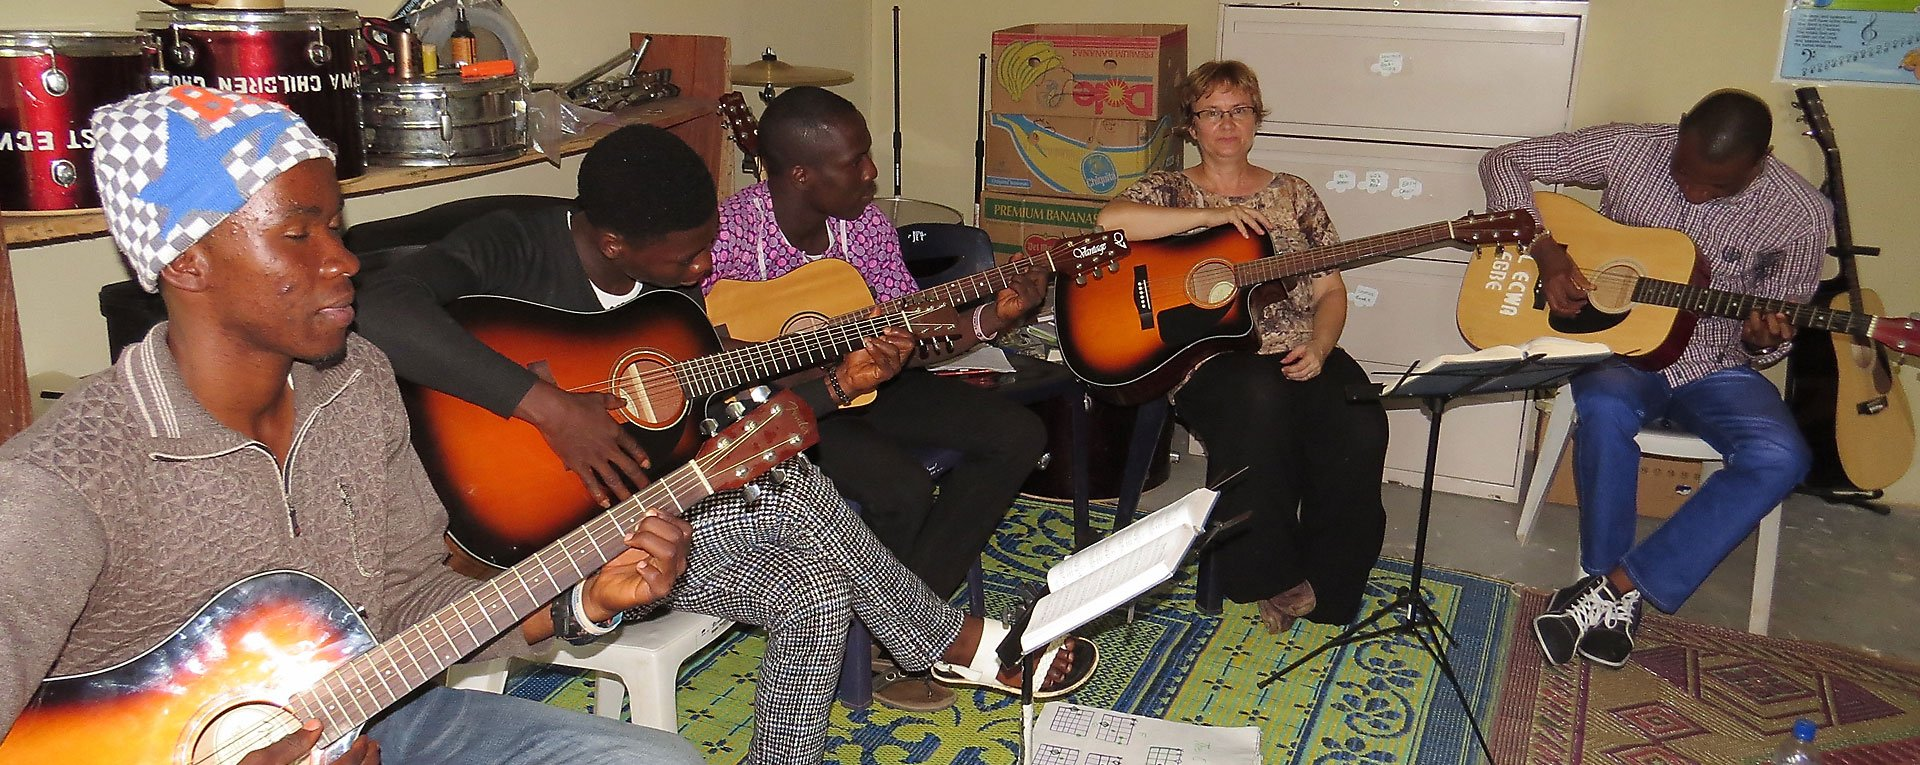 Guitar students and teacher at egbe music school